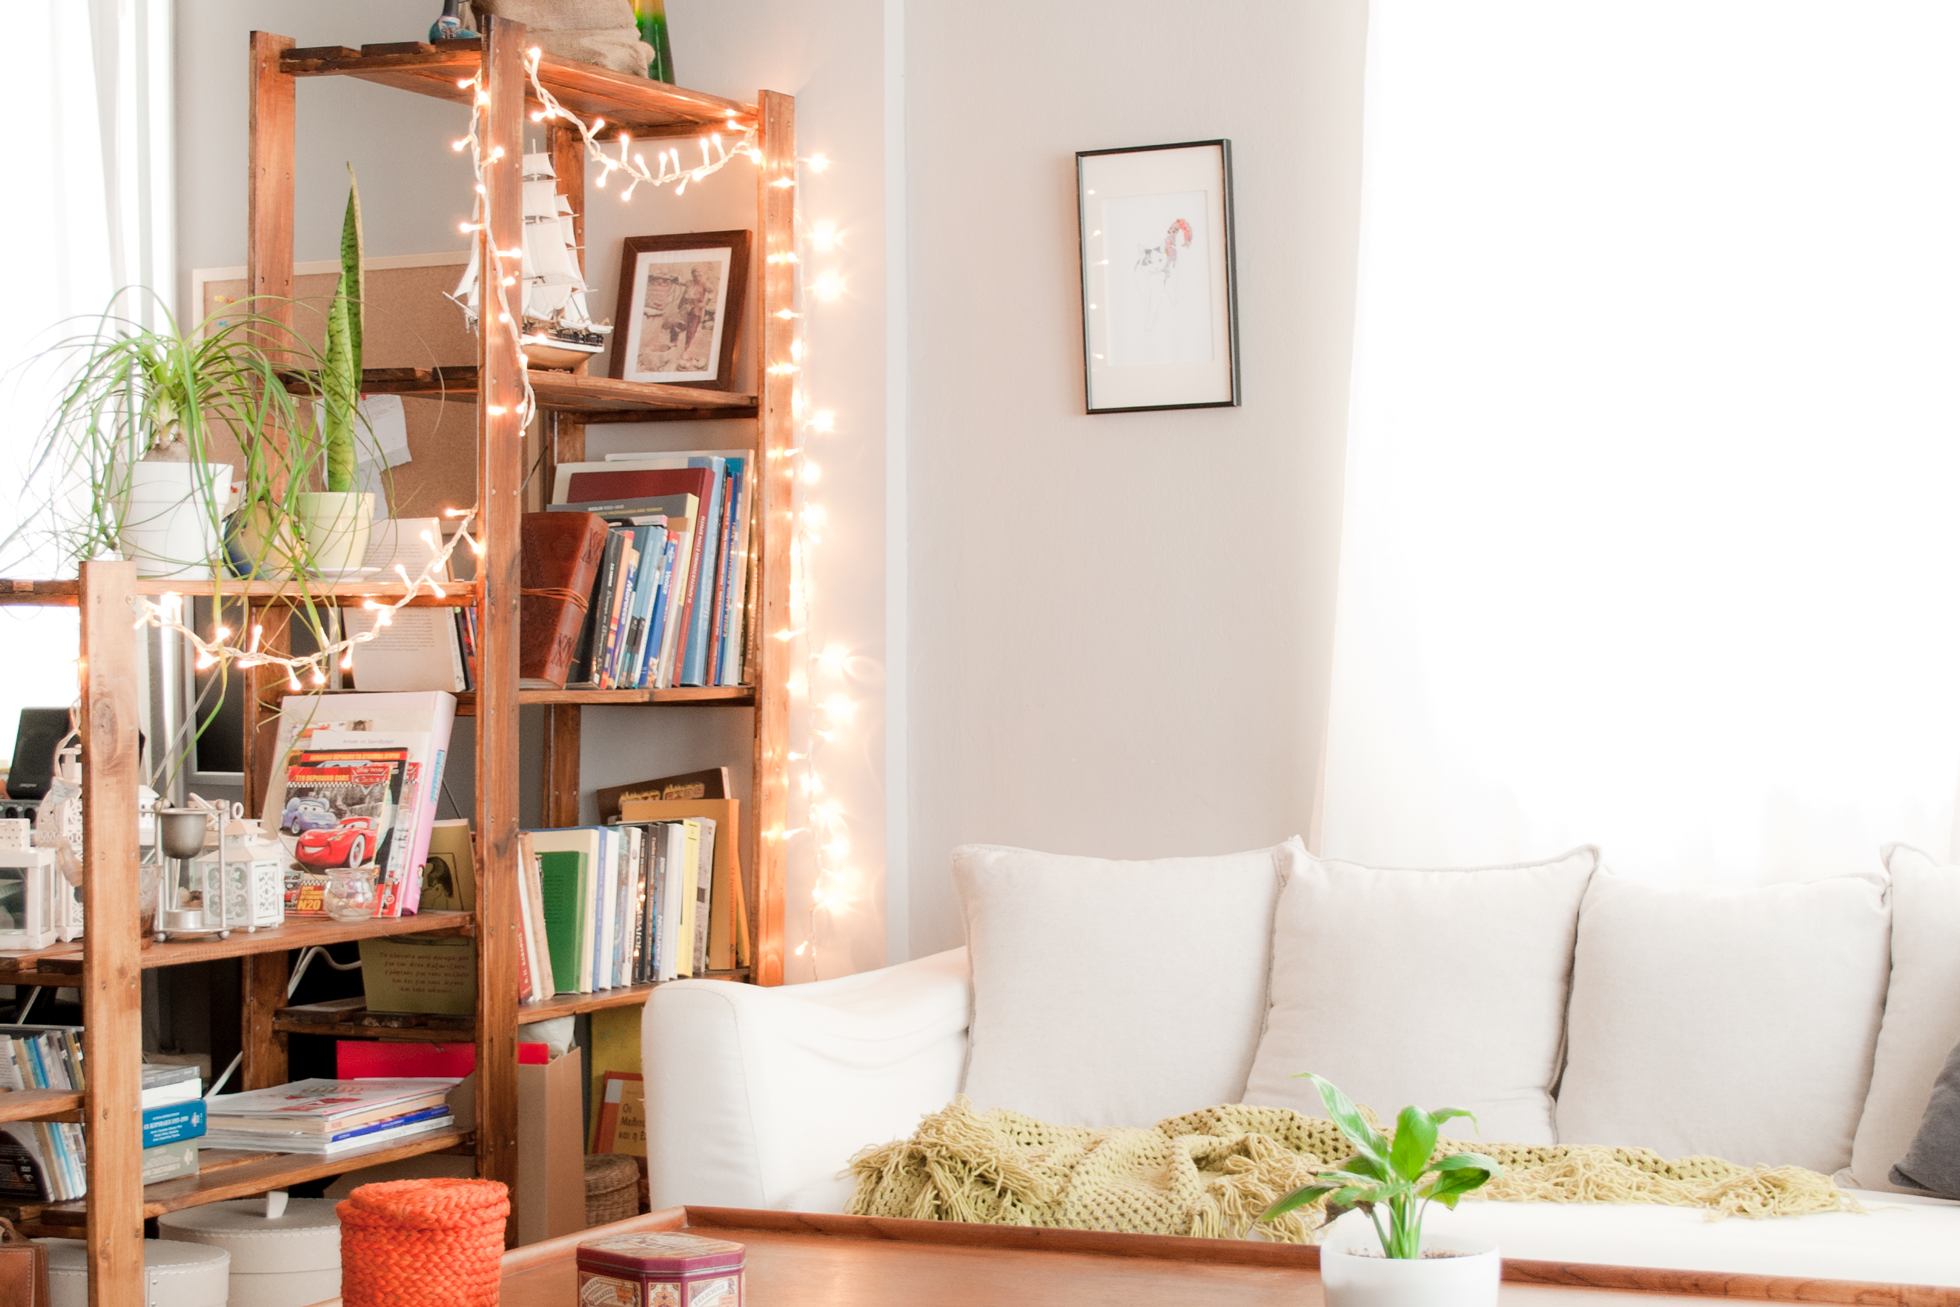 A bright living room with string lights on a wood shelf